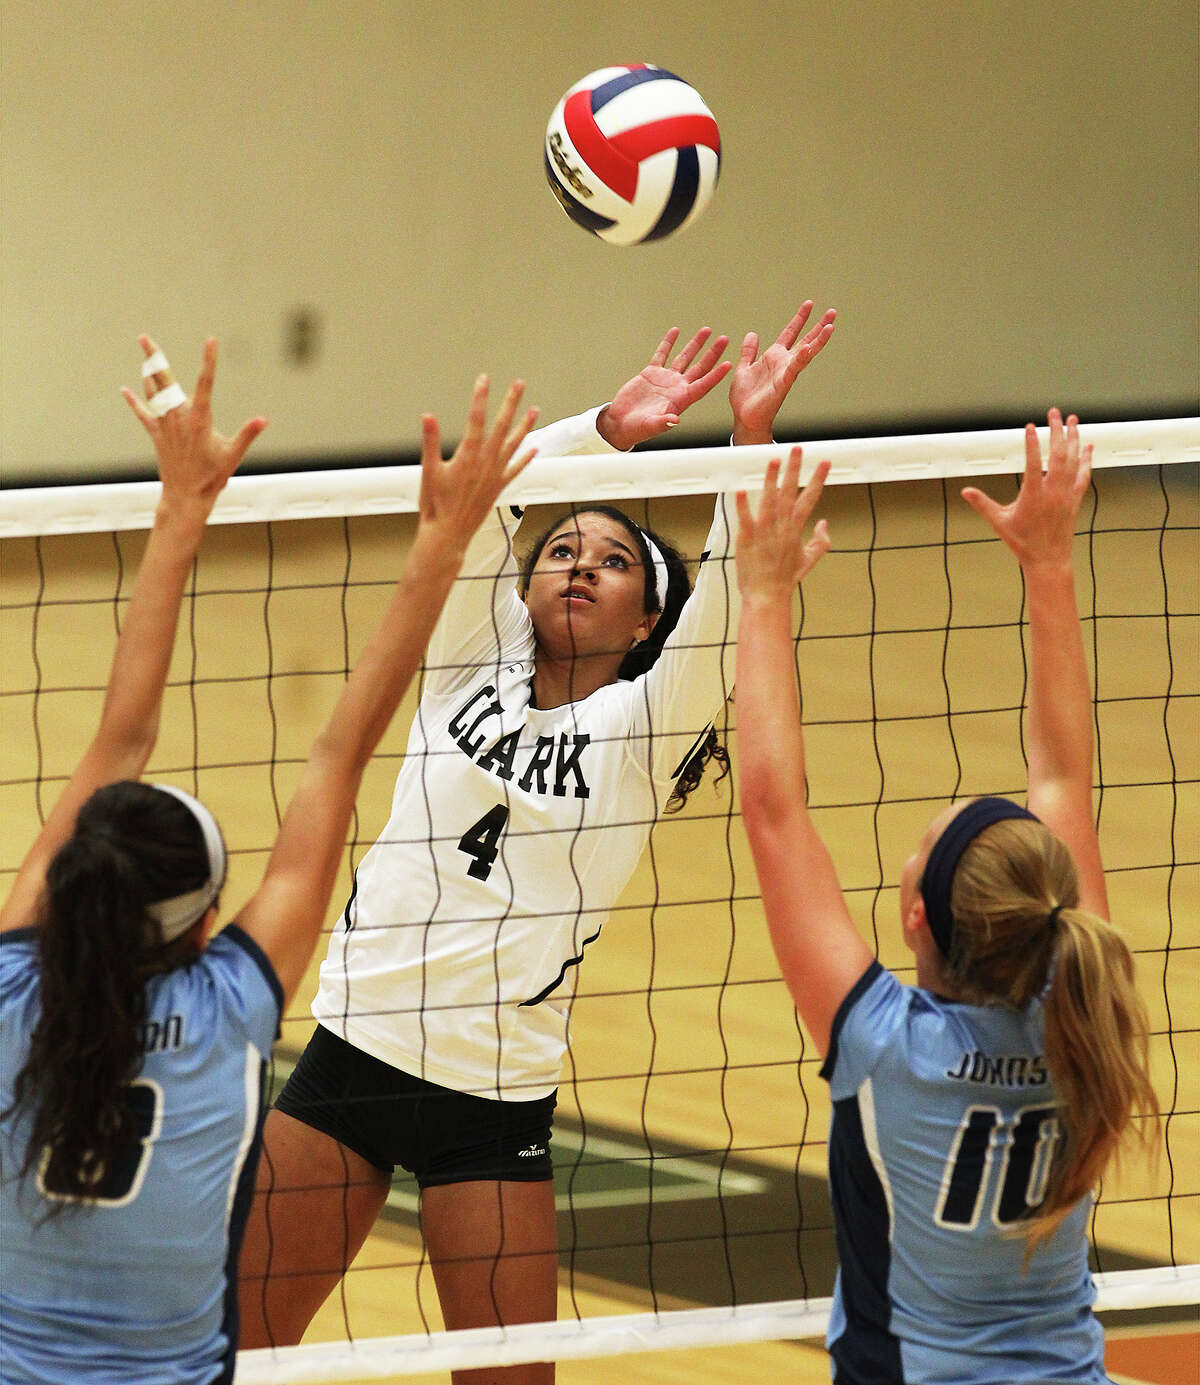 Clark's Maddie Woods (04) attempts a play against Johnson's Shelby Walker (08) and Meghan Parker (10) in volleyball at Littleton Gym on Tuesday, Aug. 13, 2013.